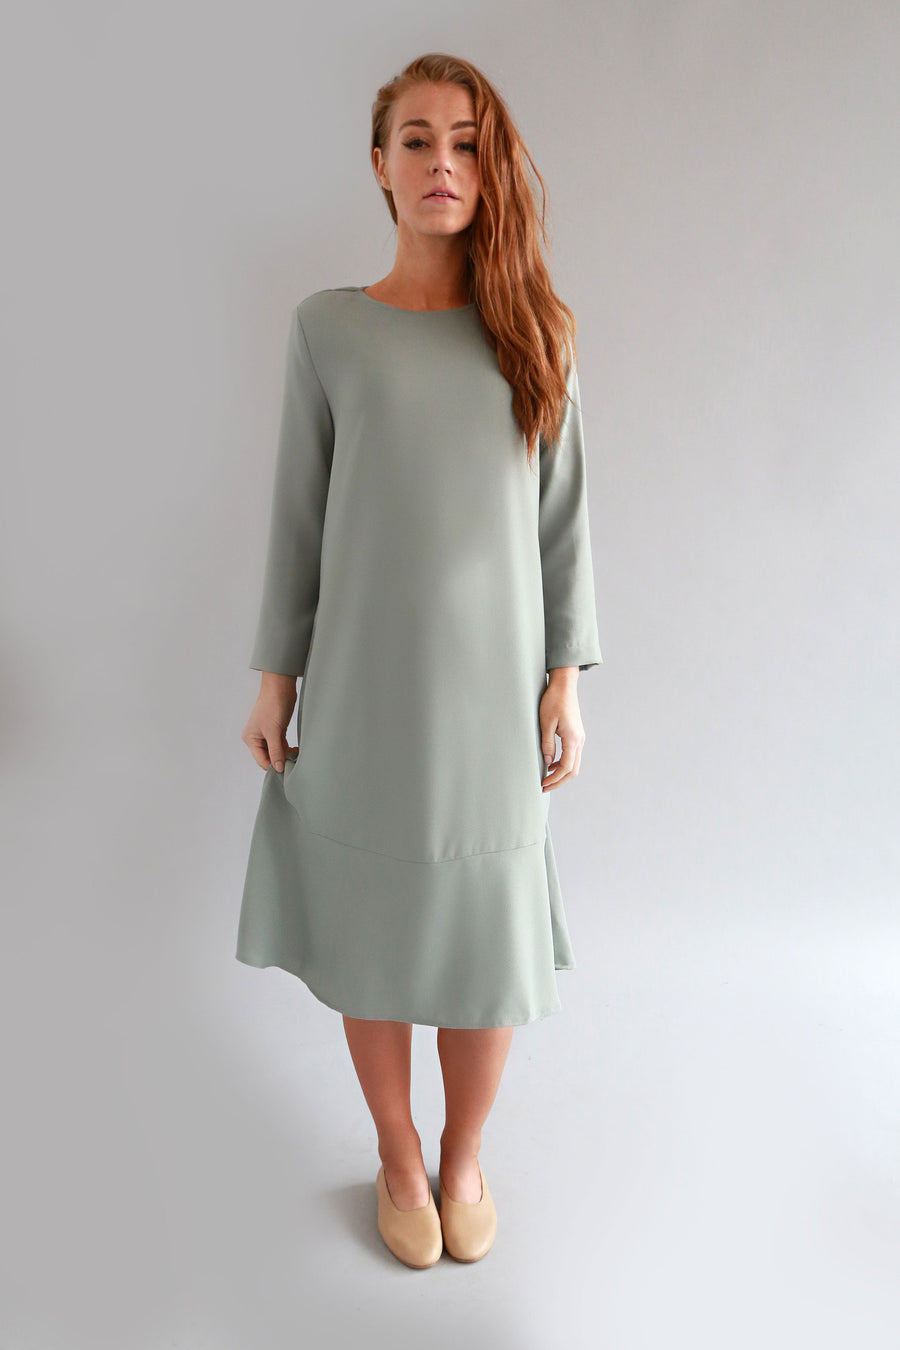 SEA FOAM MILKA DRESS